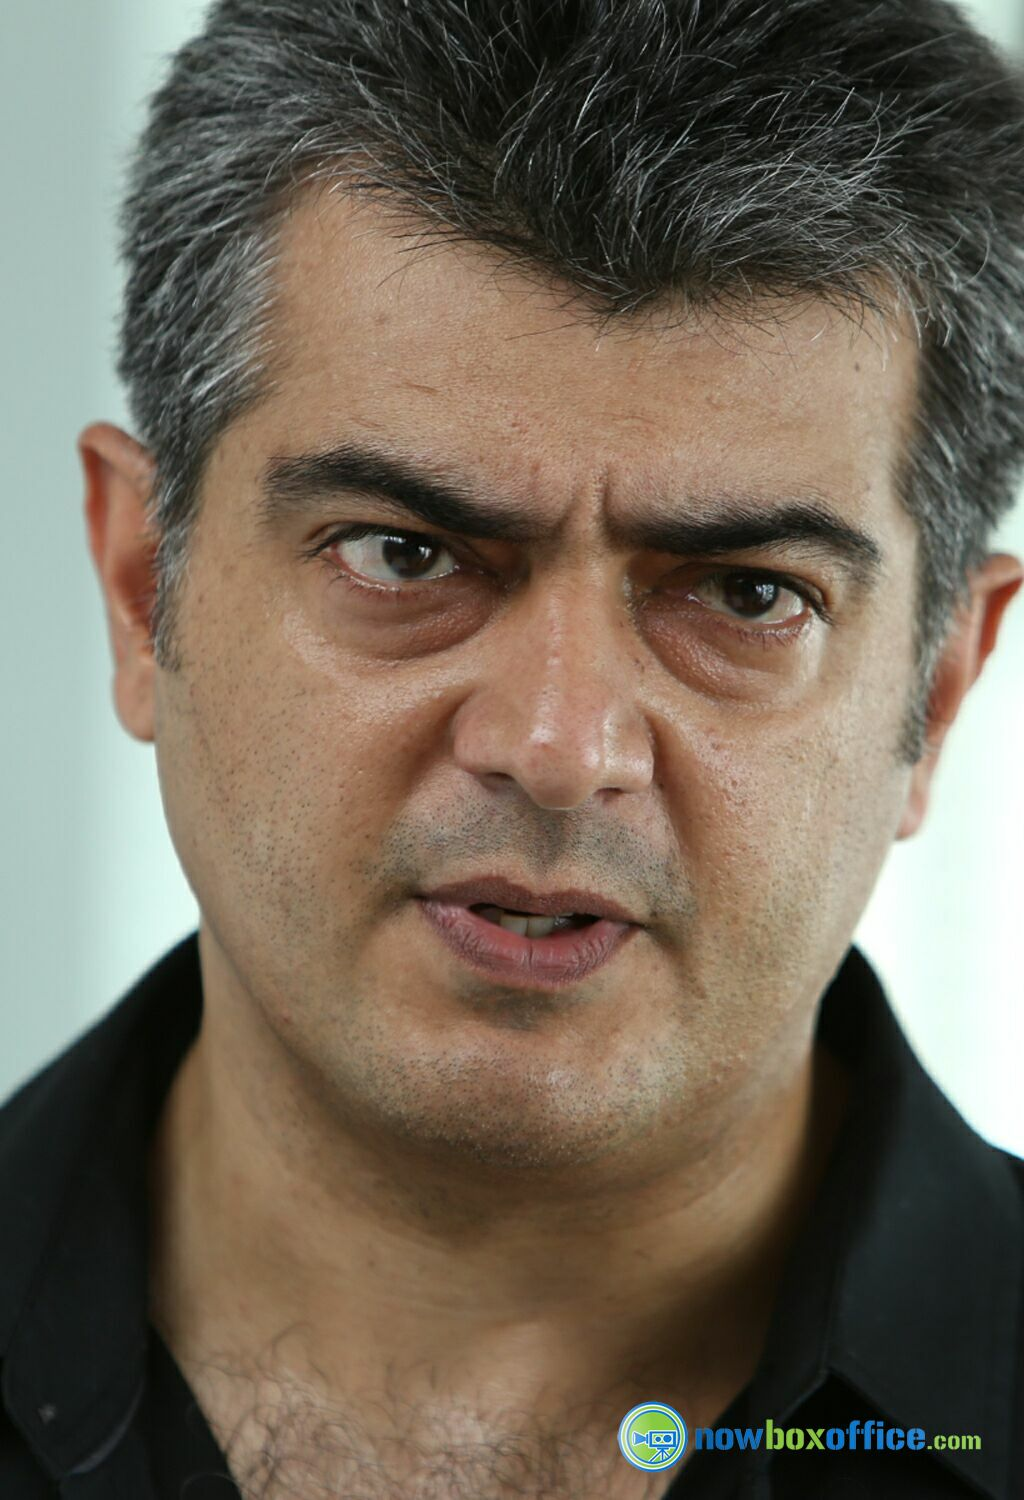 ... Wallpapers | Ajith Kumar Photos - Latest Free Hd Wallpapers Collection